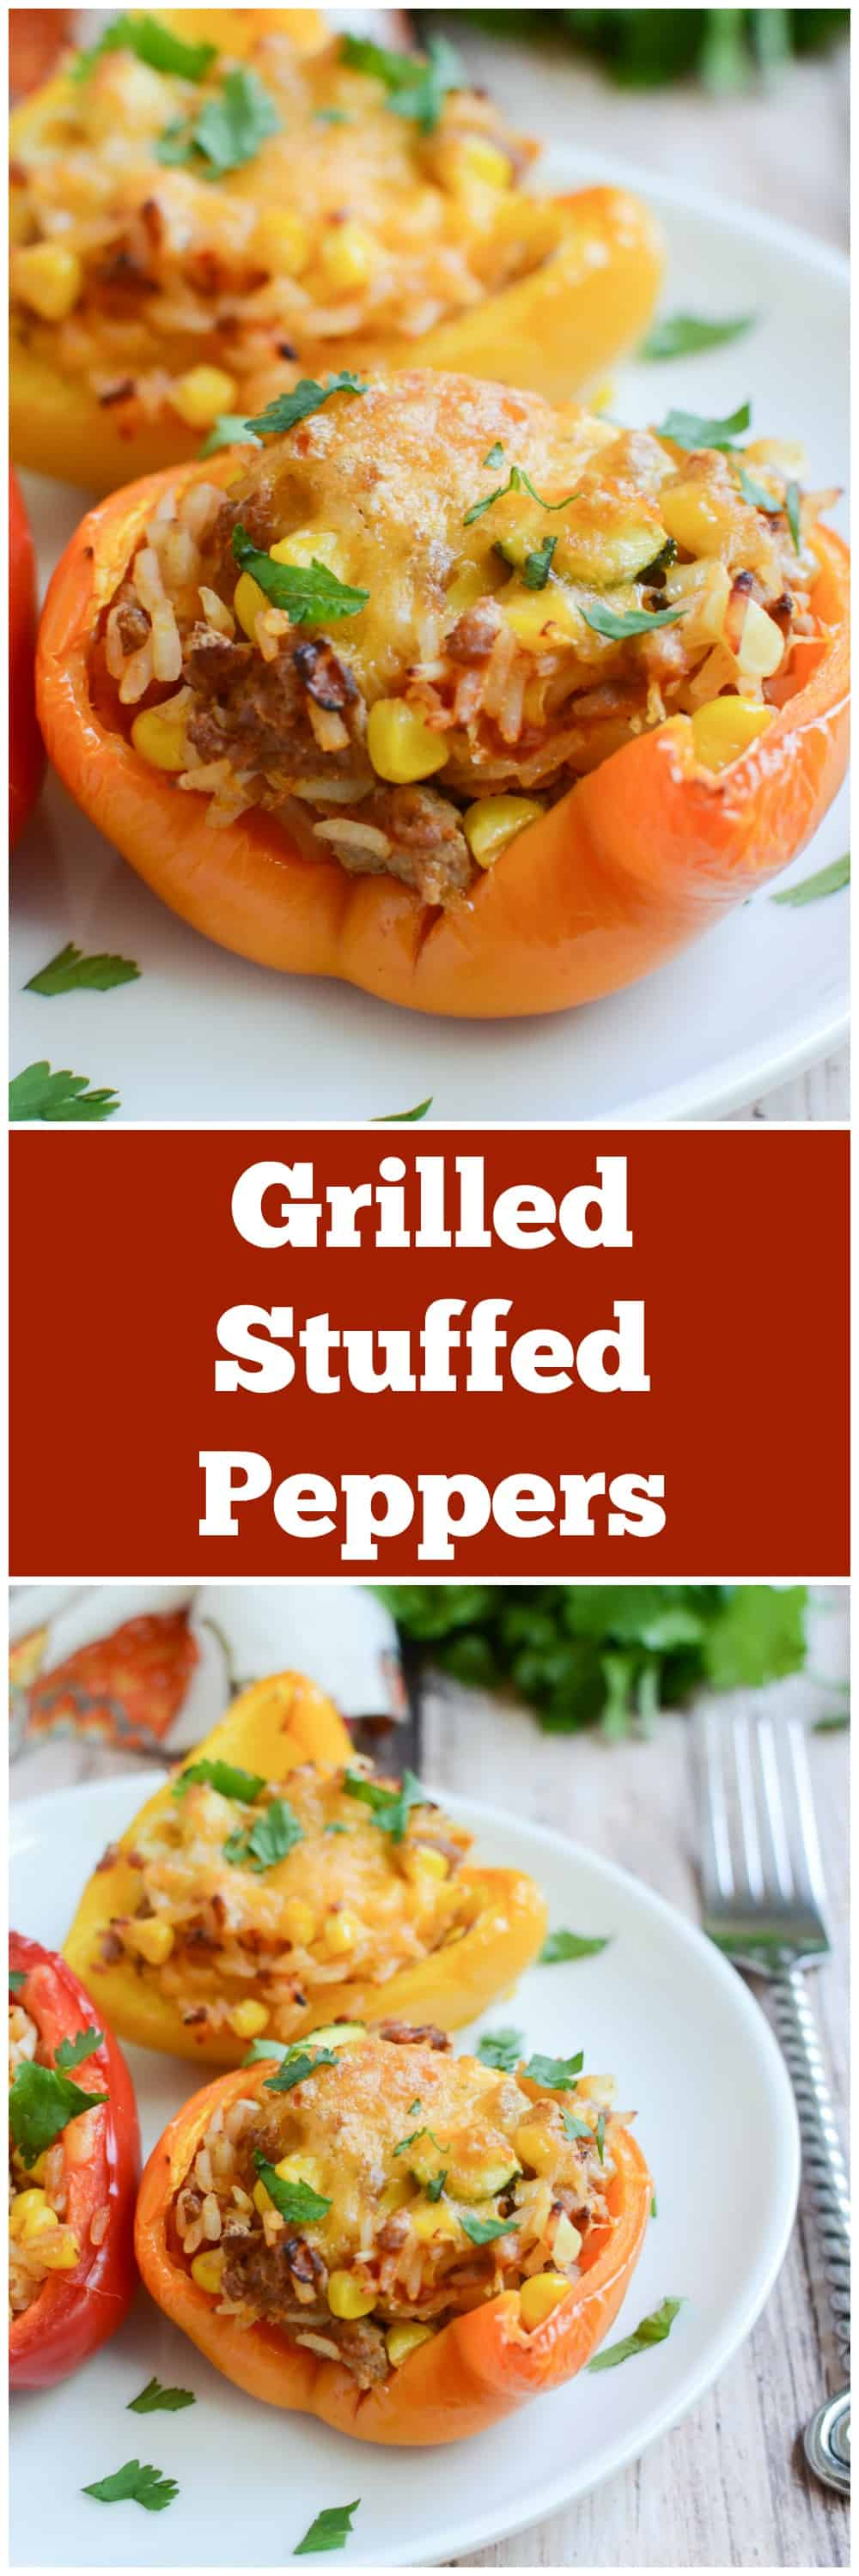 Grilled Stuffed Peppers - quick and healthy dinner! Stuffed with ground turkey, rice, fresh corn, and zucchini!